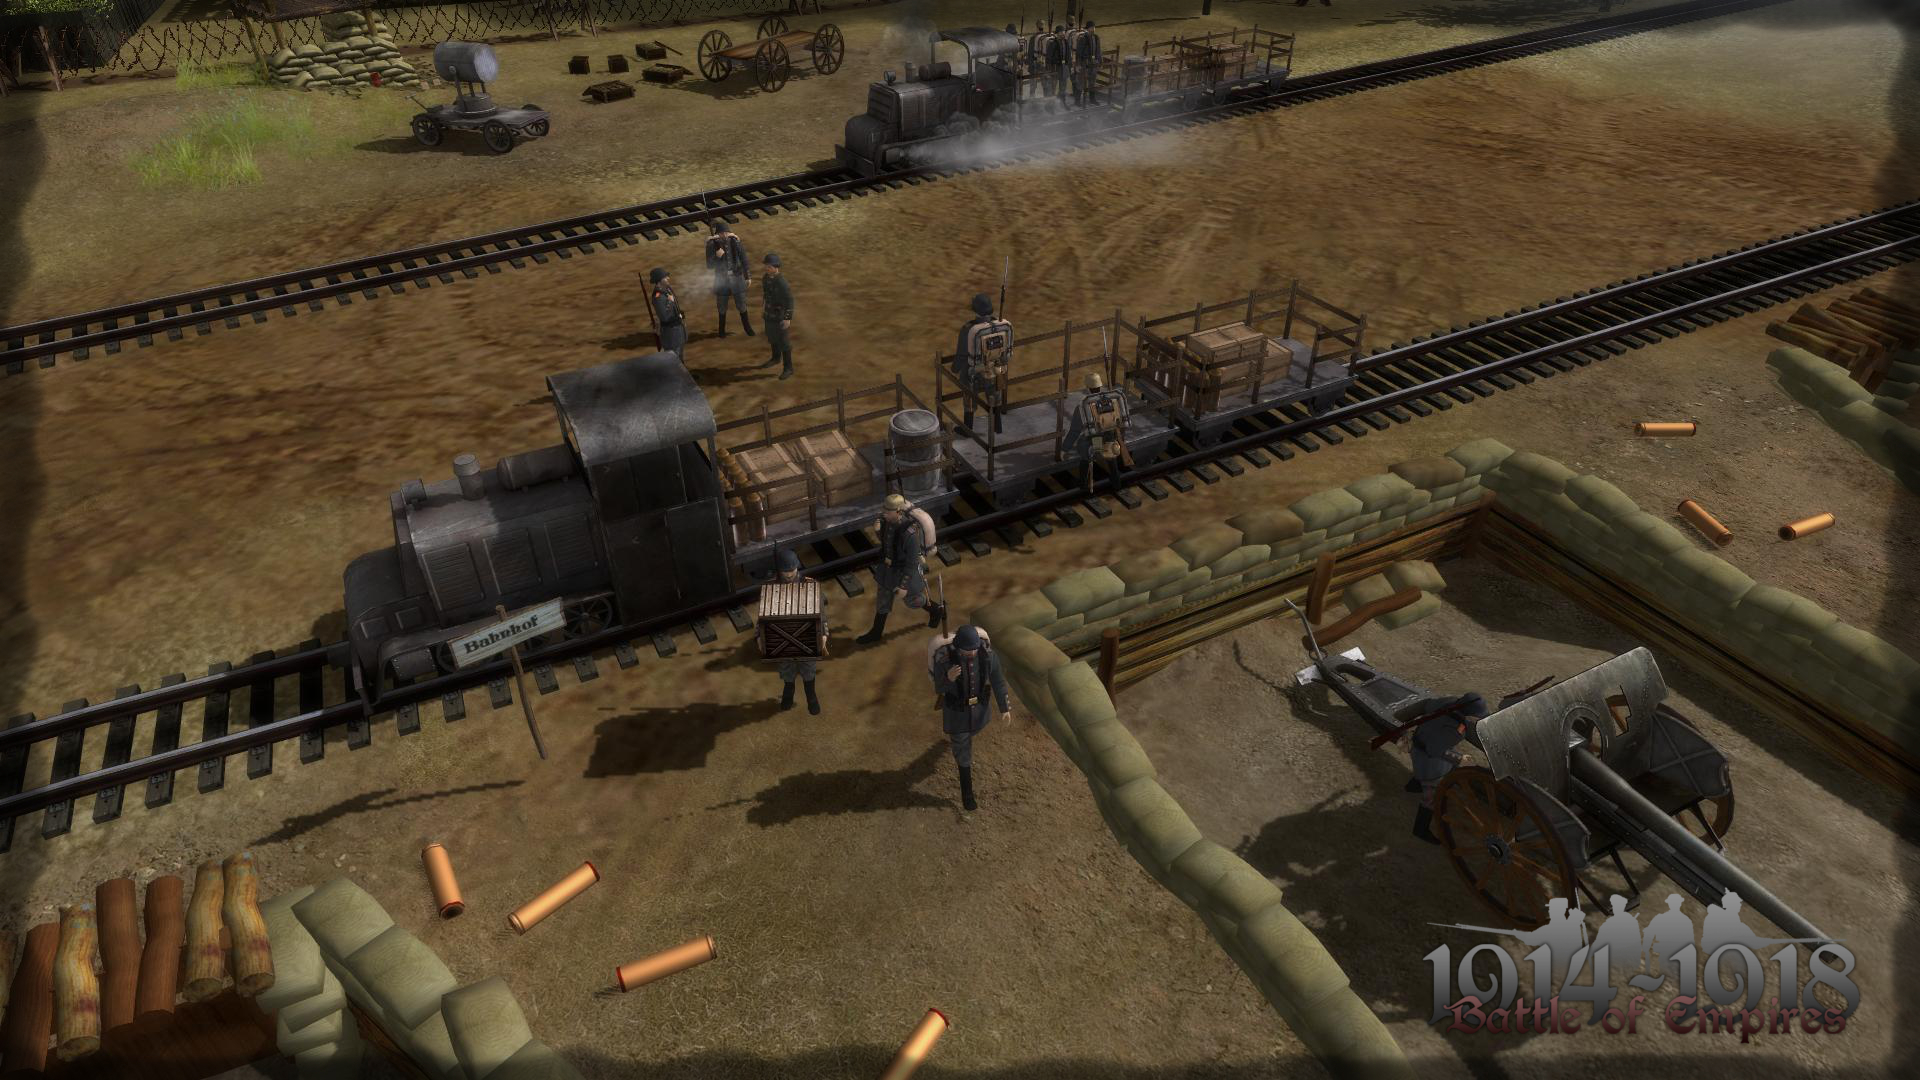 battle of empires 1914 to 1918 free download